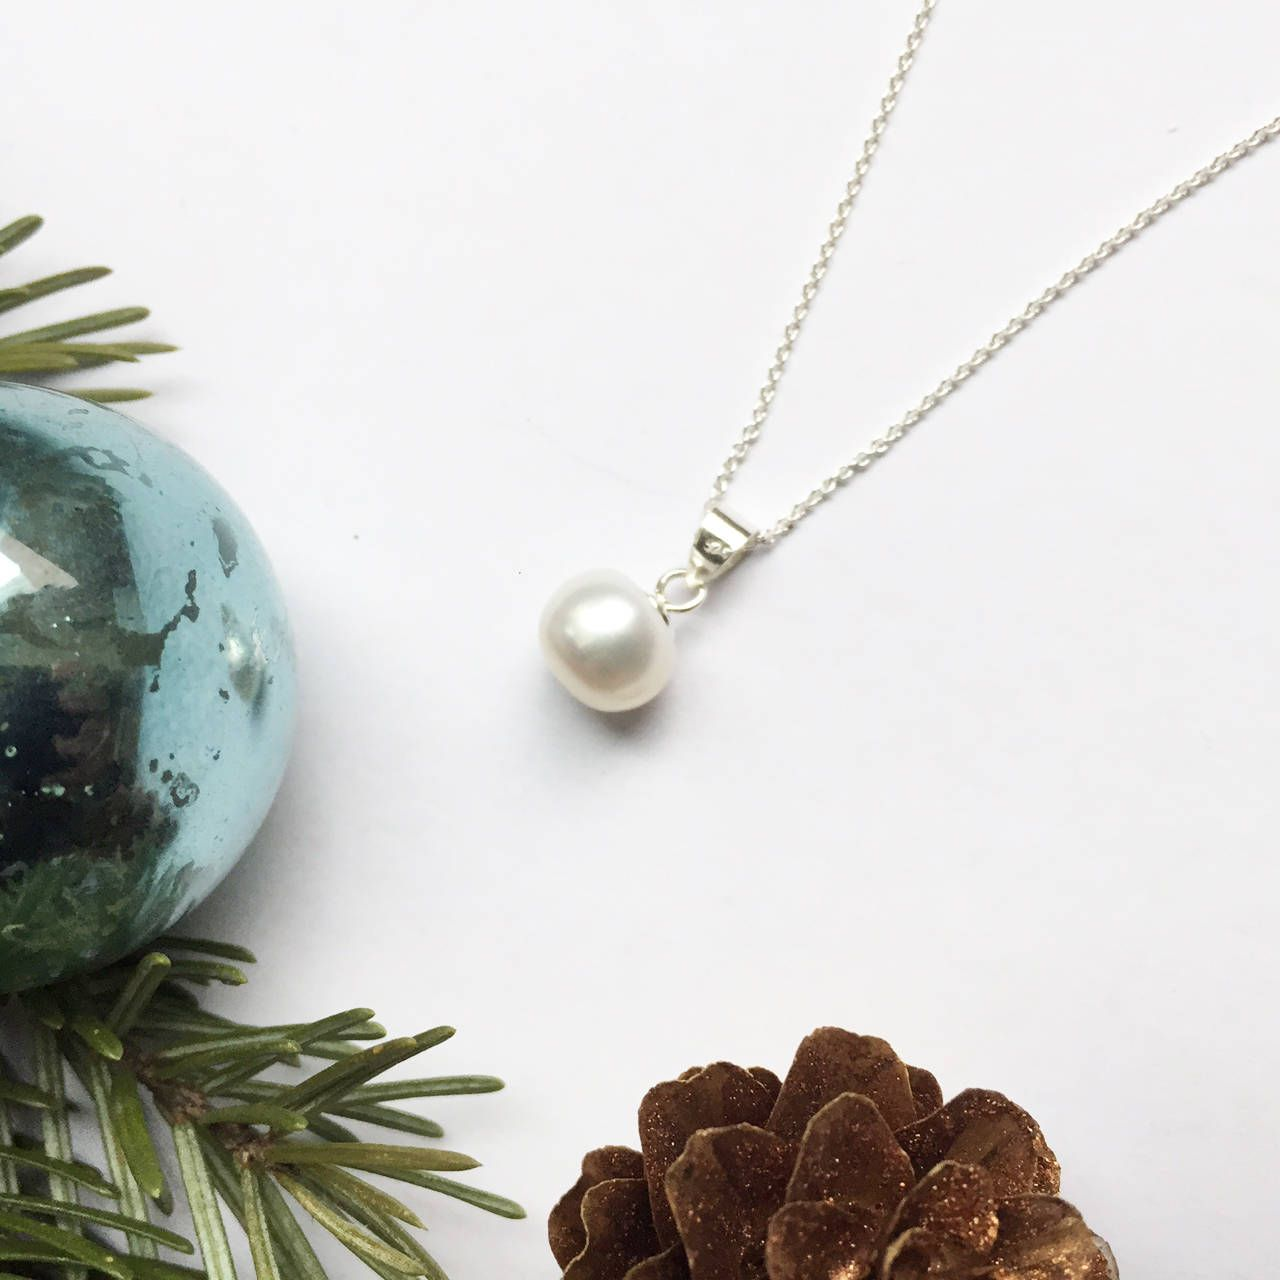 Today elegant pearl necklace etsy shop white fresh water pearl today elegant pearl necklace etsy shop white fresh water pearl jewellerygift for aloadofball Gallery